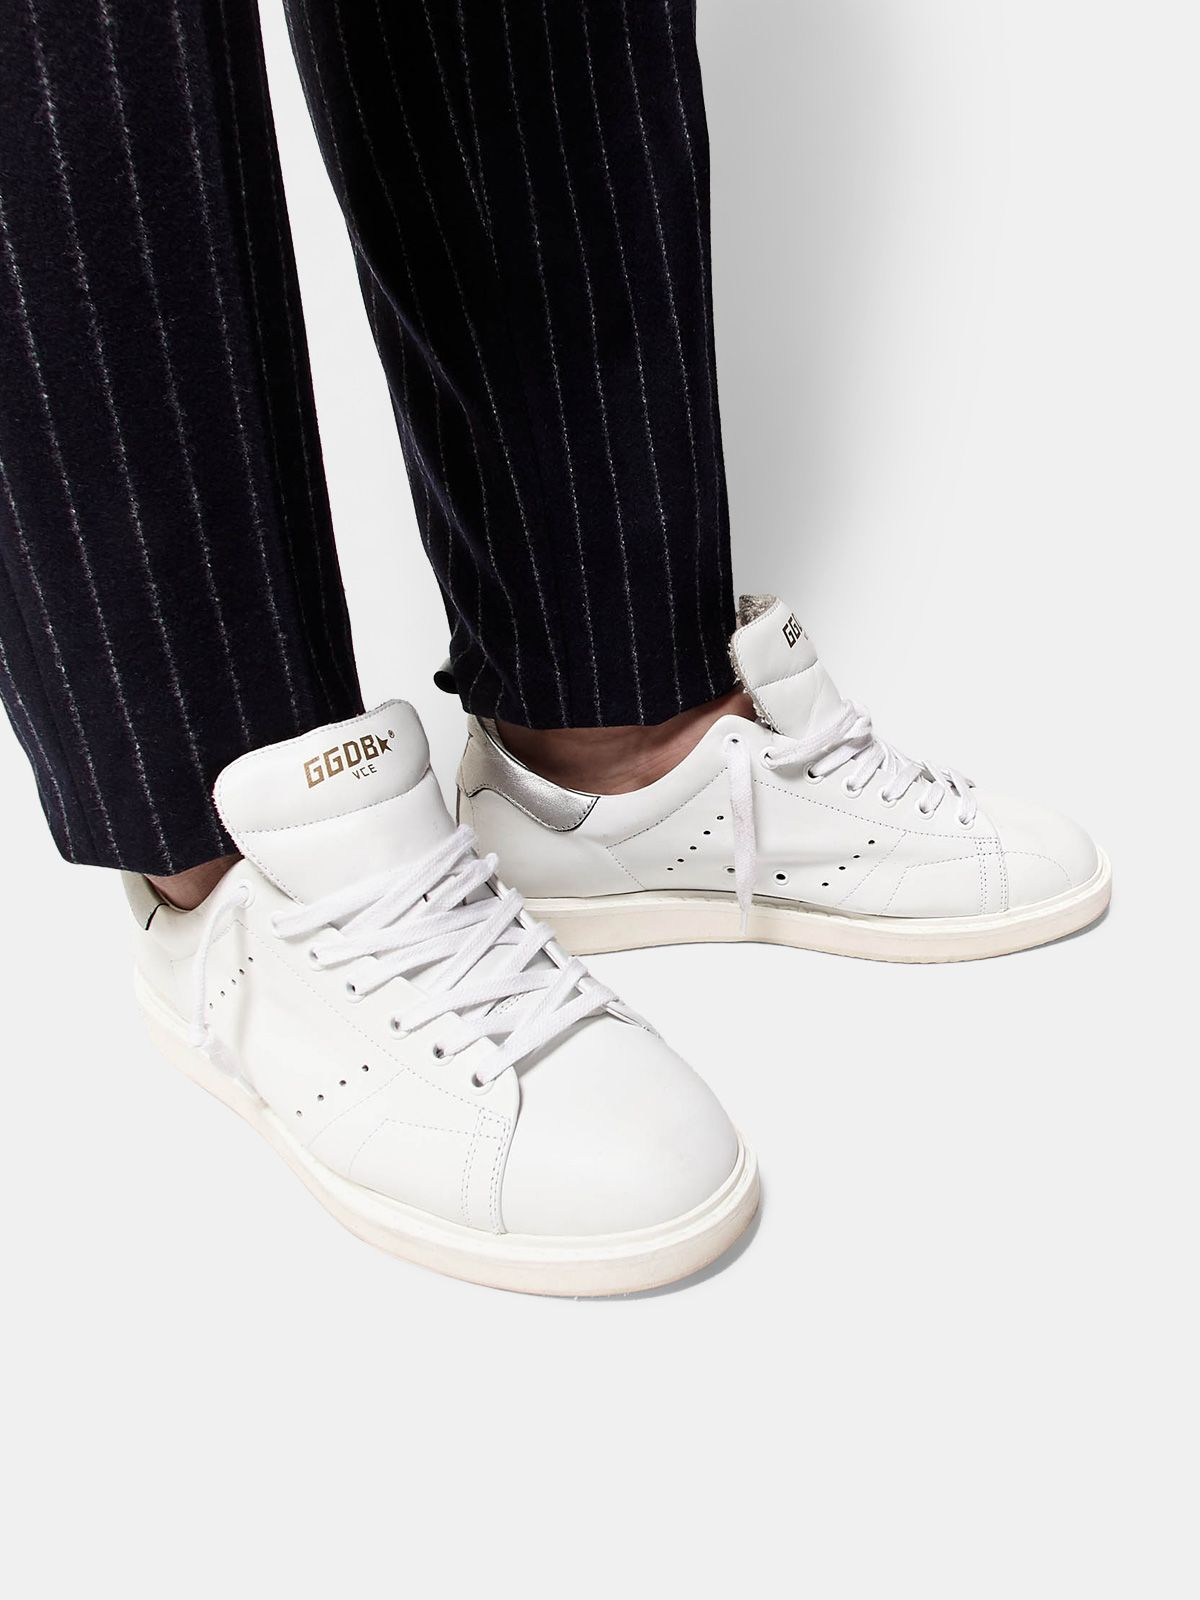 Golden Goose - Sneakers Starter in pelle con talloncino metallizzato in